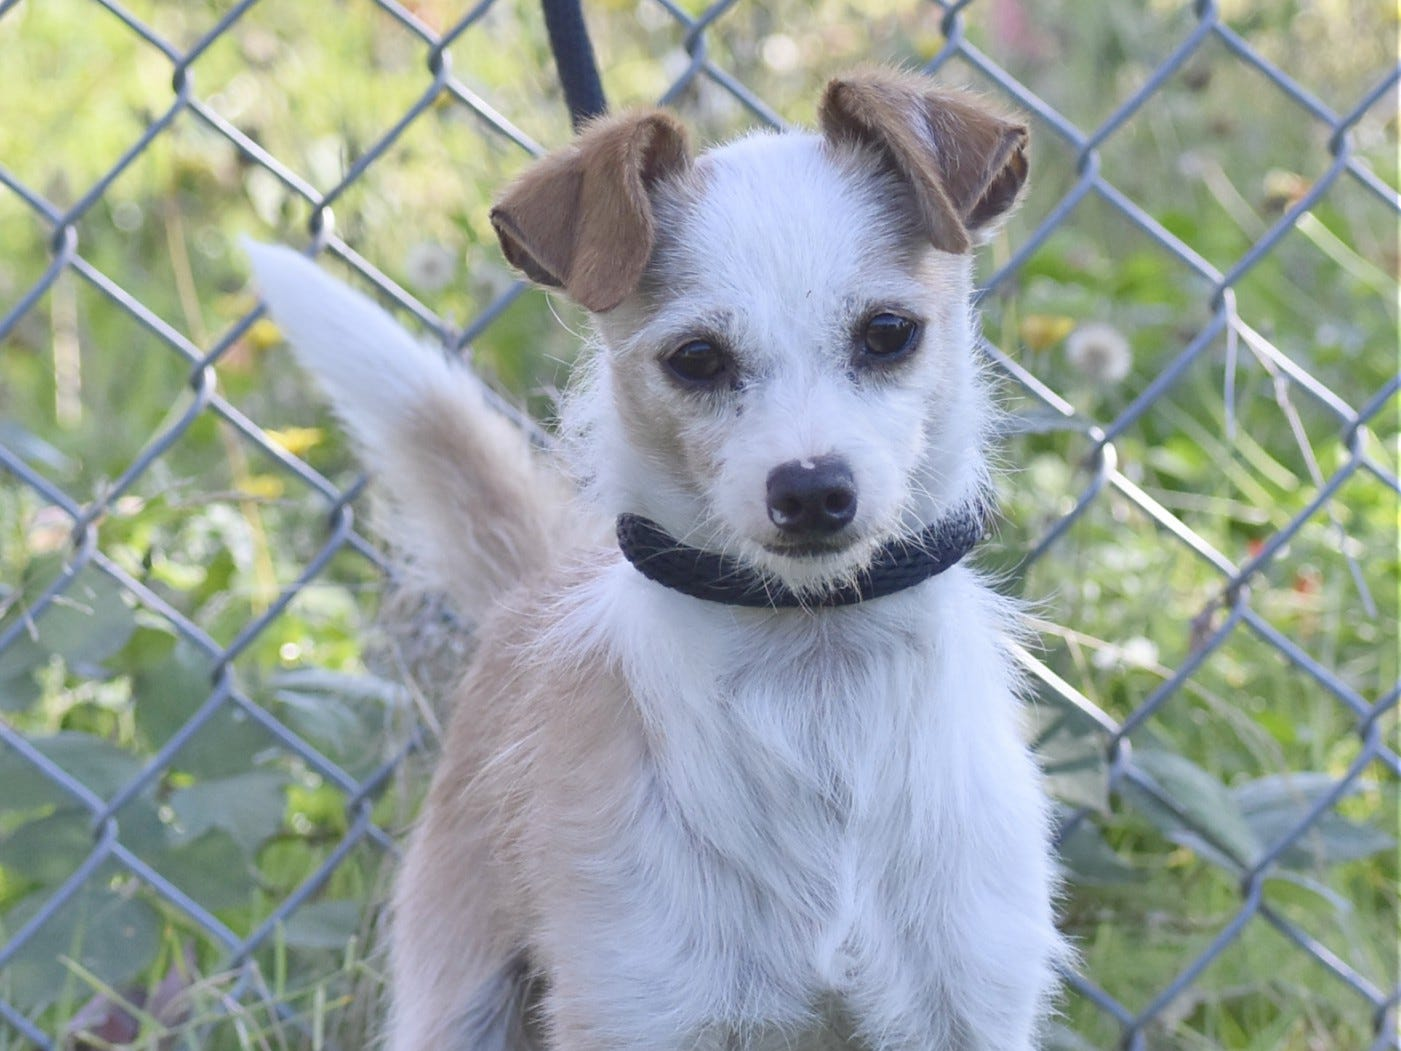 Dawson is a 2-year-old male red and white Jack Russell terrier mix. He is a sweet little guy who loves to climb in your lap and be petted. Dawson loves going for walks and enjoys other dogs. For information, contact Marion County Dog Services at 503-588-5366.